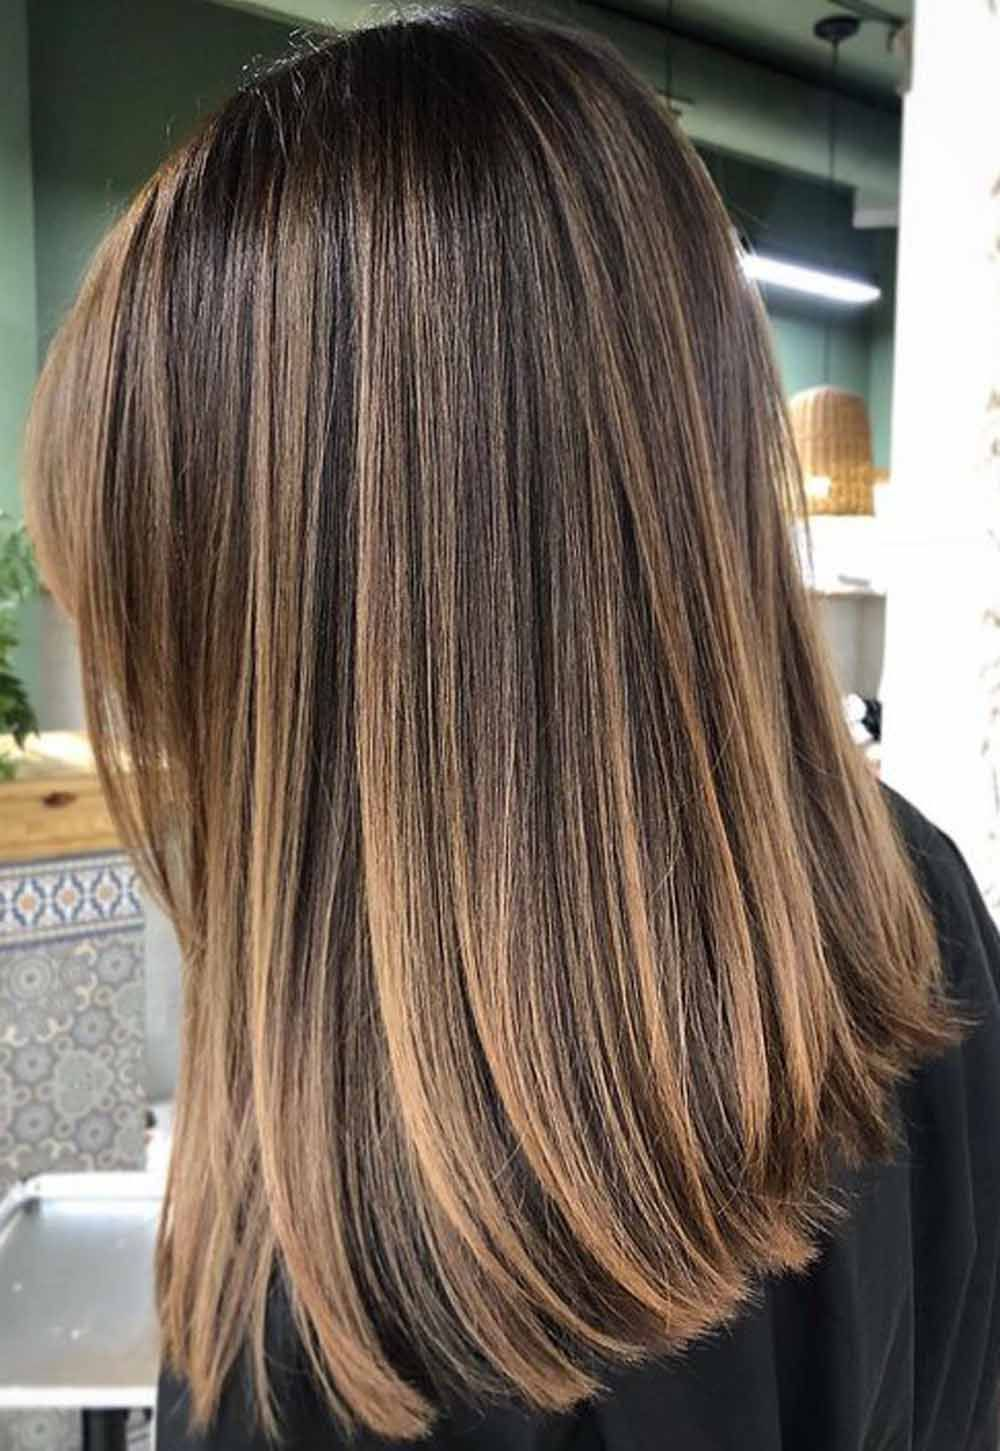 10 Hottest Balayage Hair Colors For Brunettes To Put On Spring